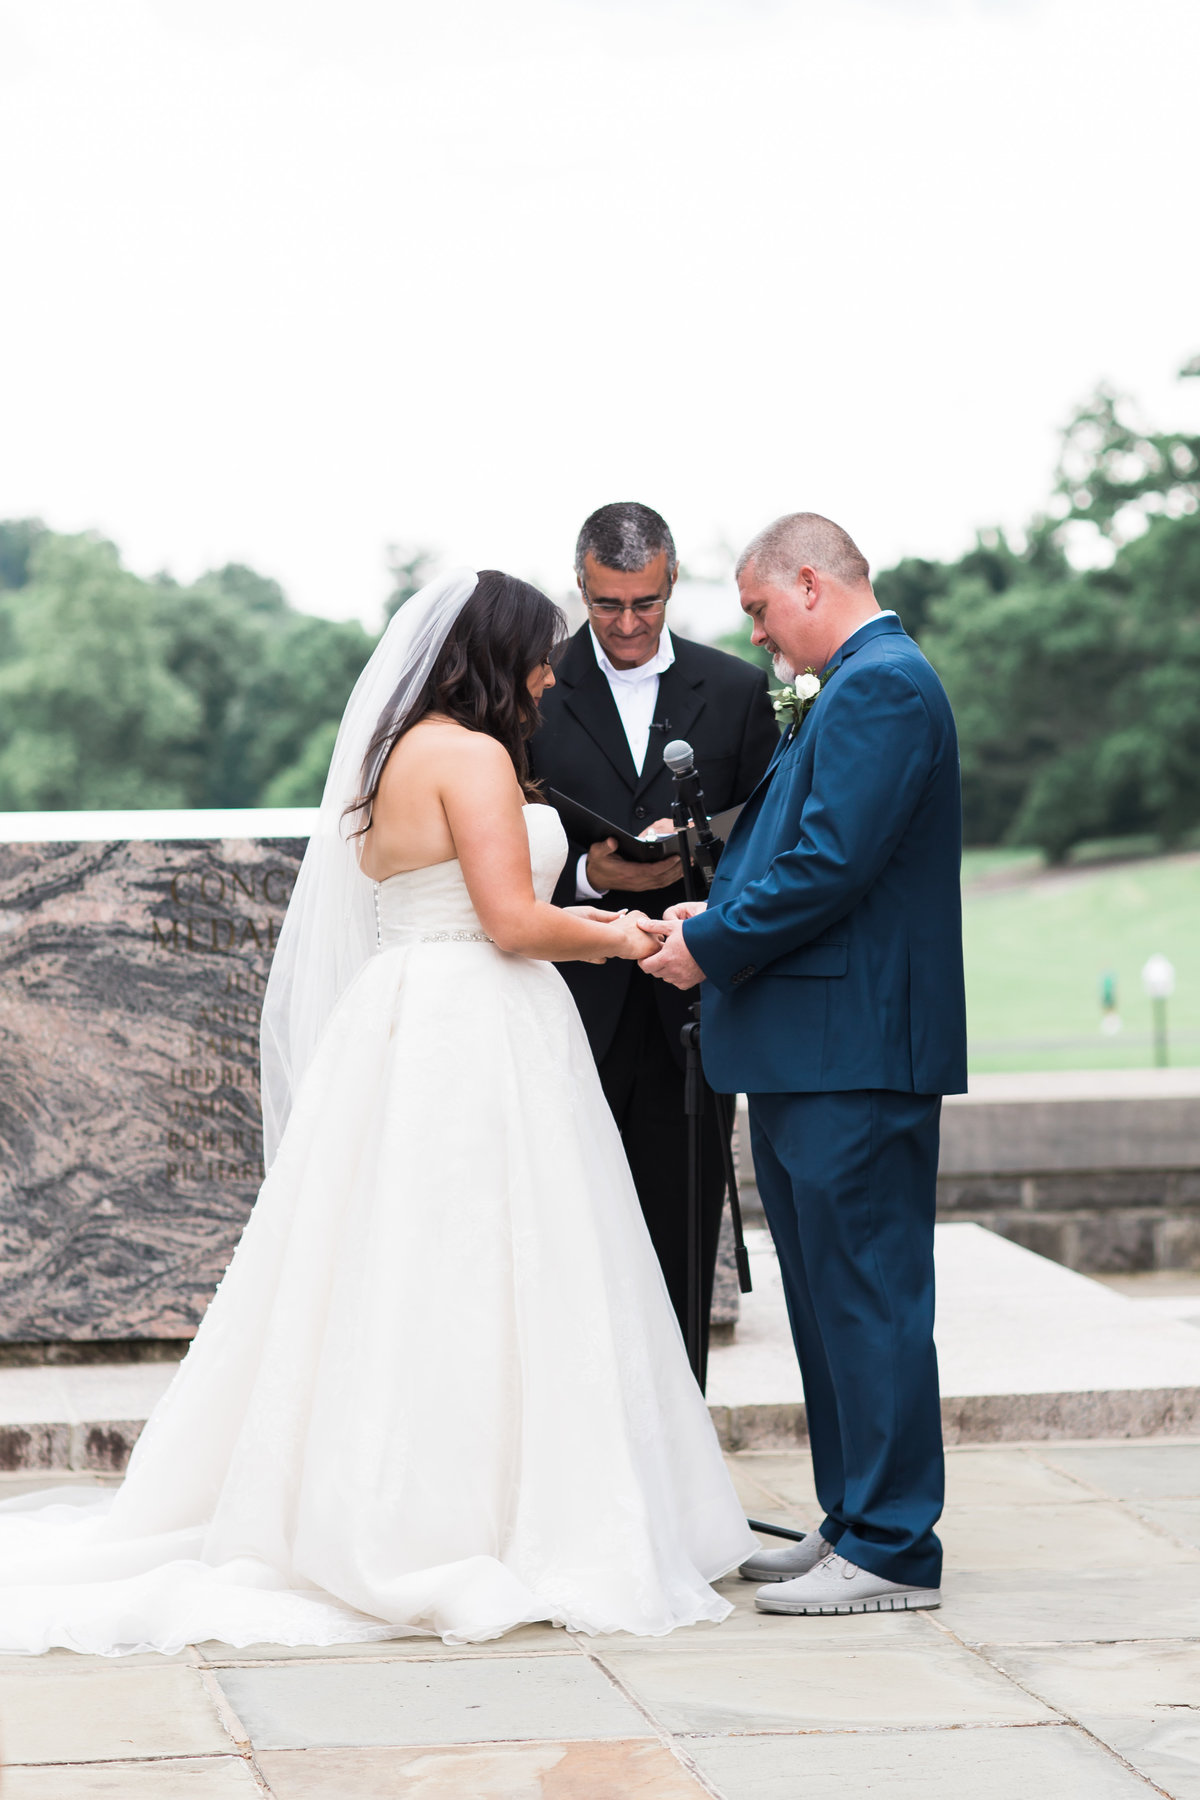 Danielle-Defayette-Photography-Wedding-War-Memorial-Chapel-Virginia-Tech-176